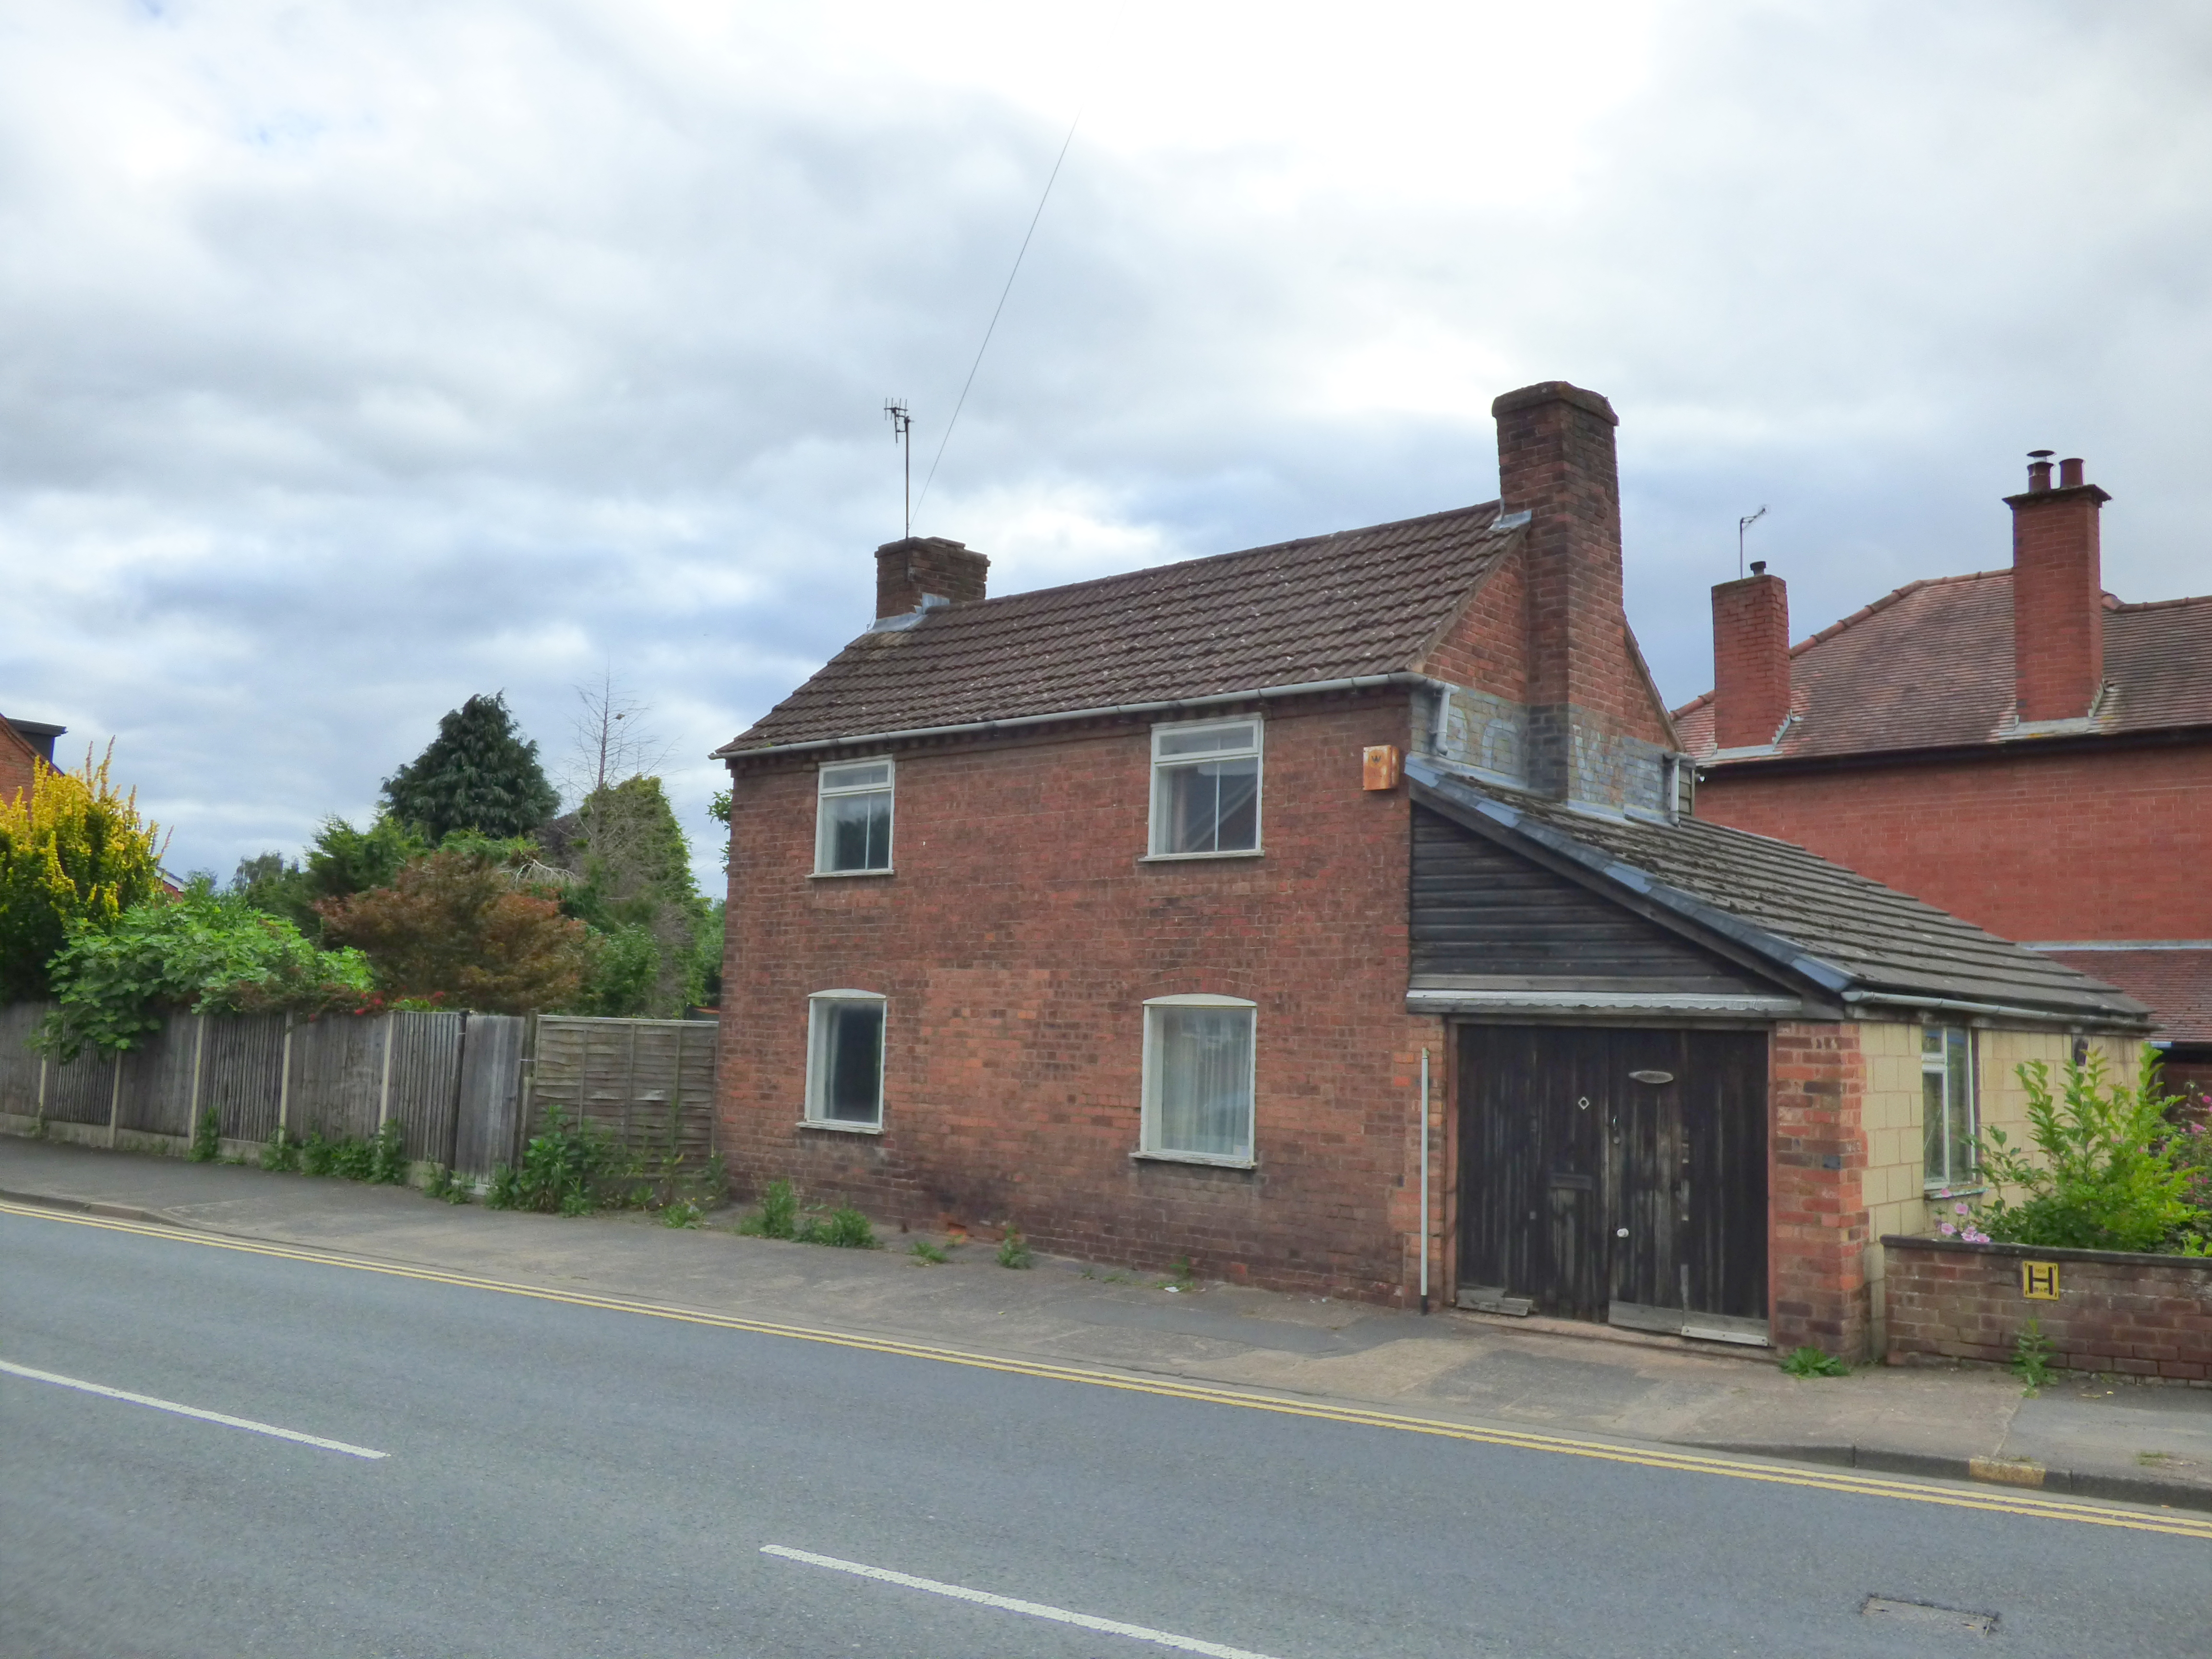 251 Ombersley Road, Worcester, WR3 7BY